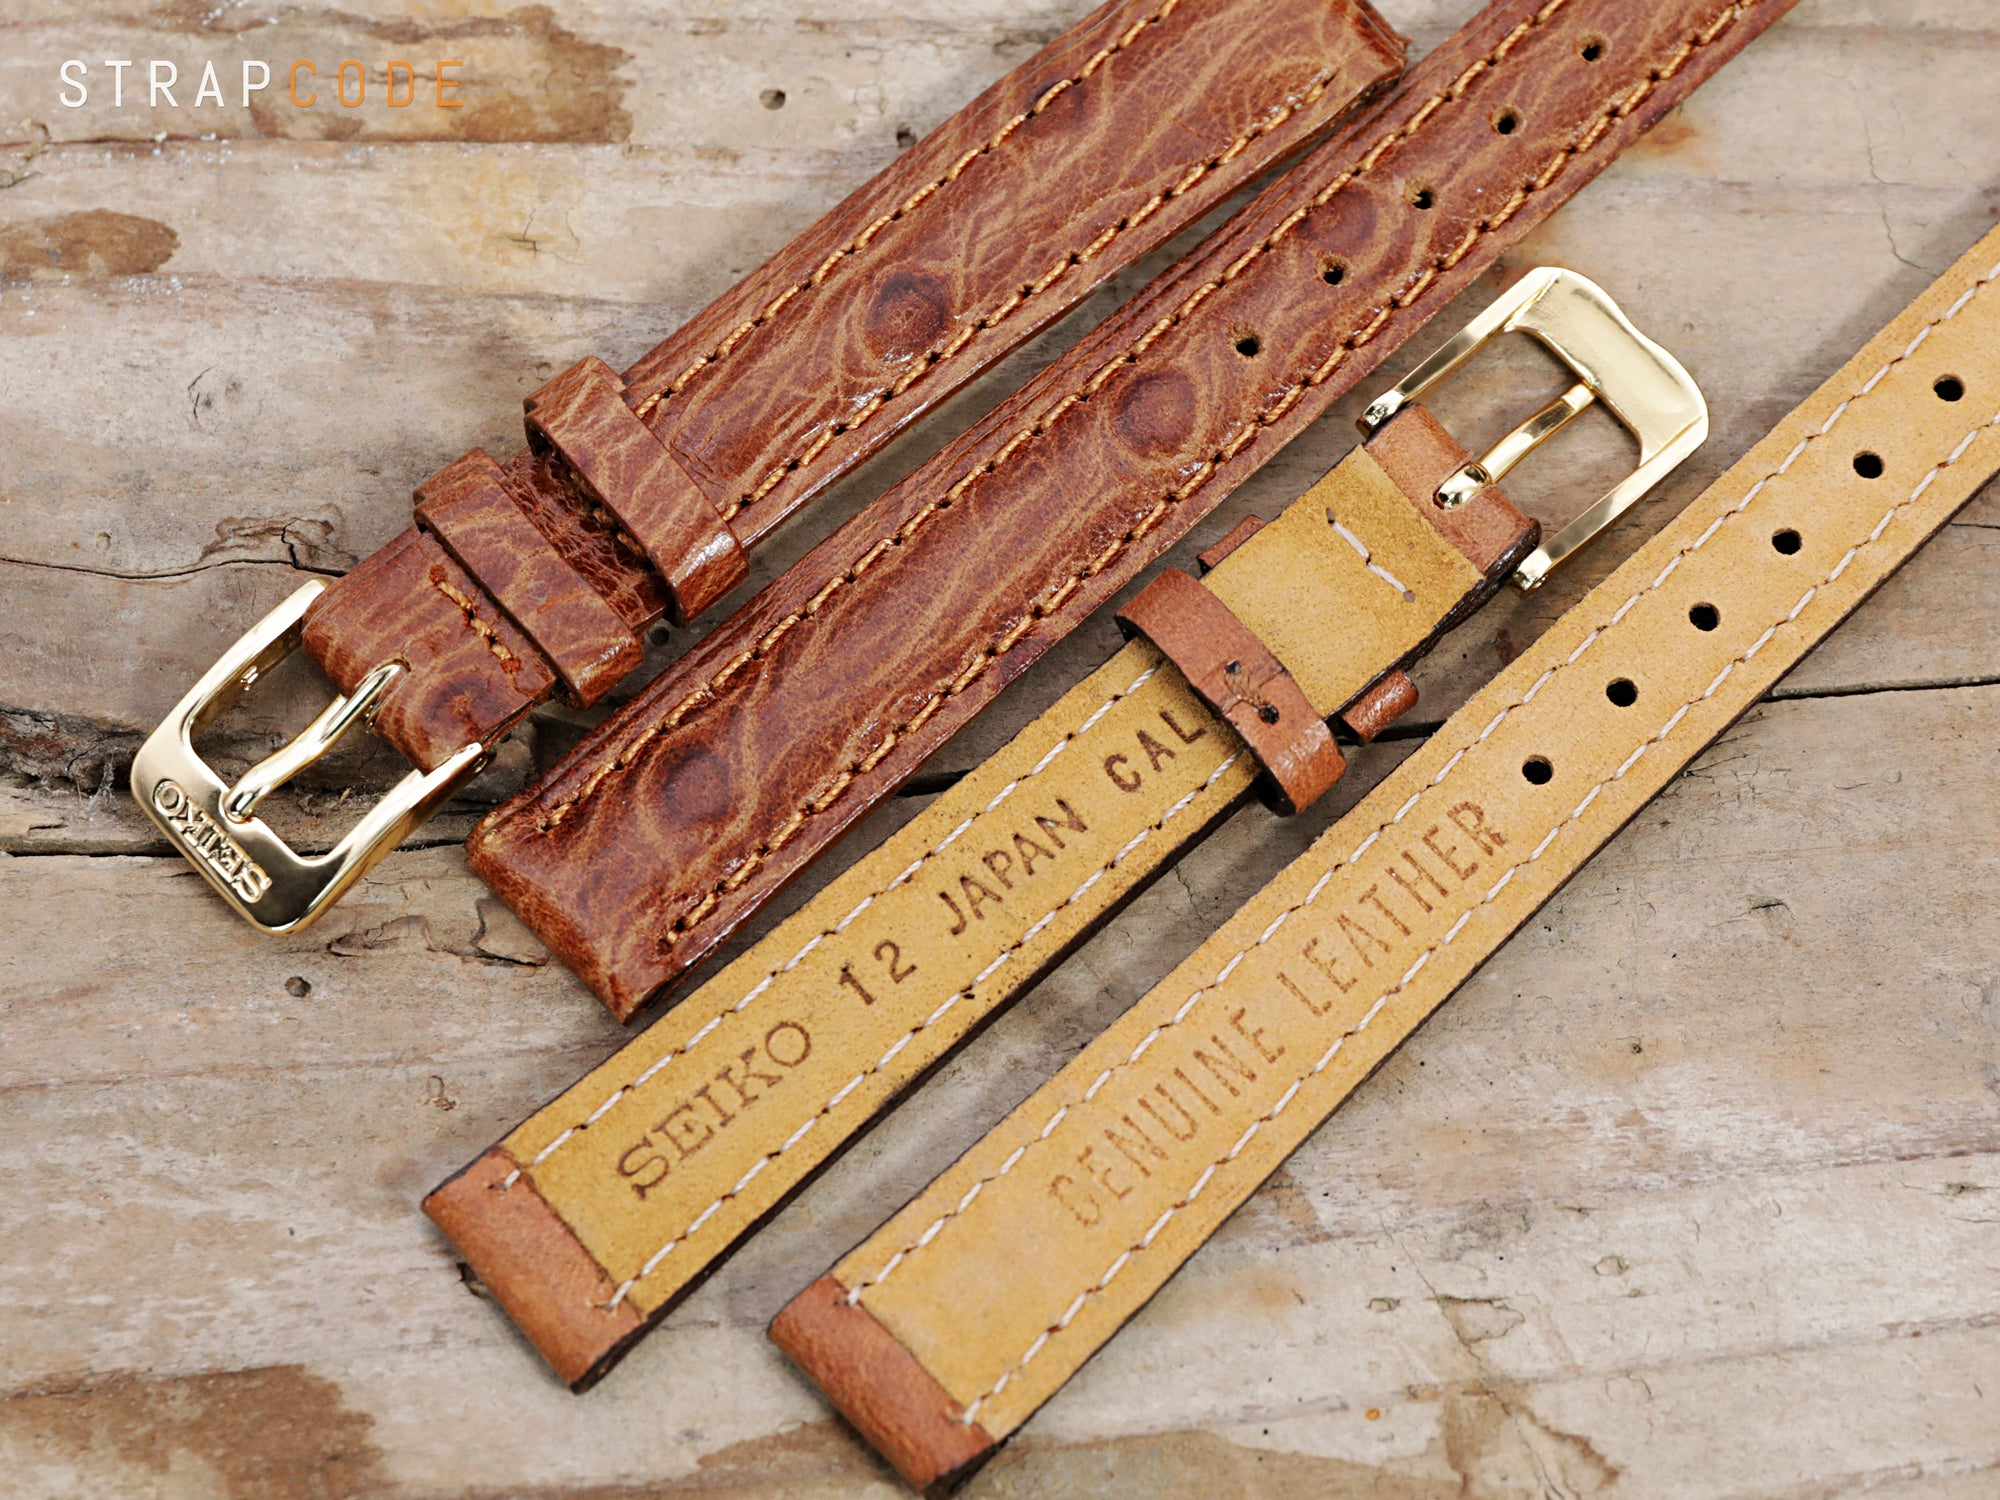 strapcode-watch-bands-W_Seiko-leather-old-seiko-small-lug-watch-bands-1